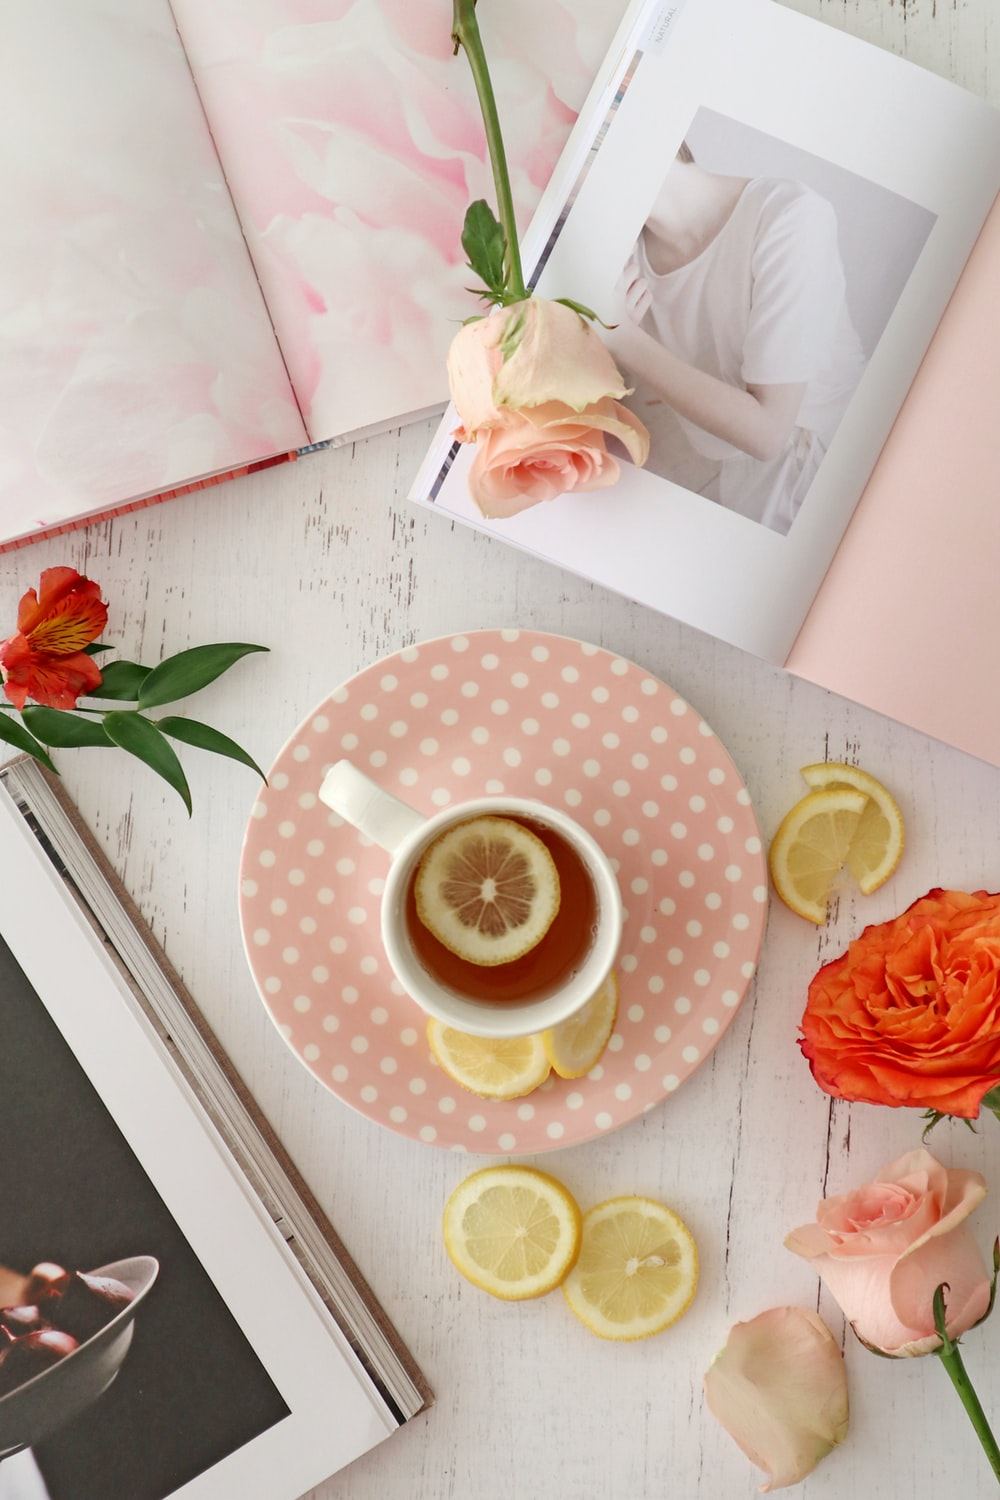 pink rose beside yellow and white polka dot ceramic cup with saucer